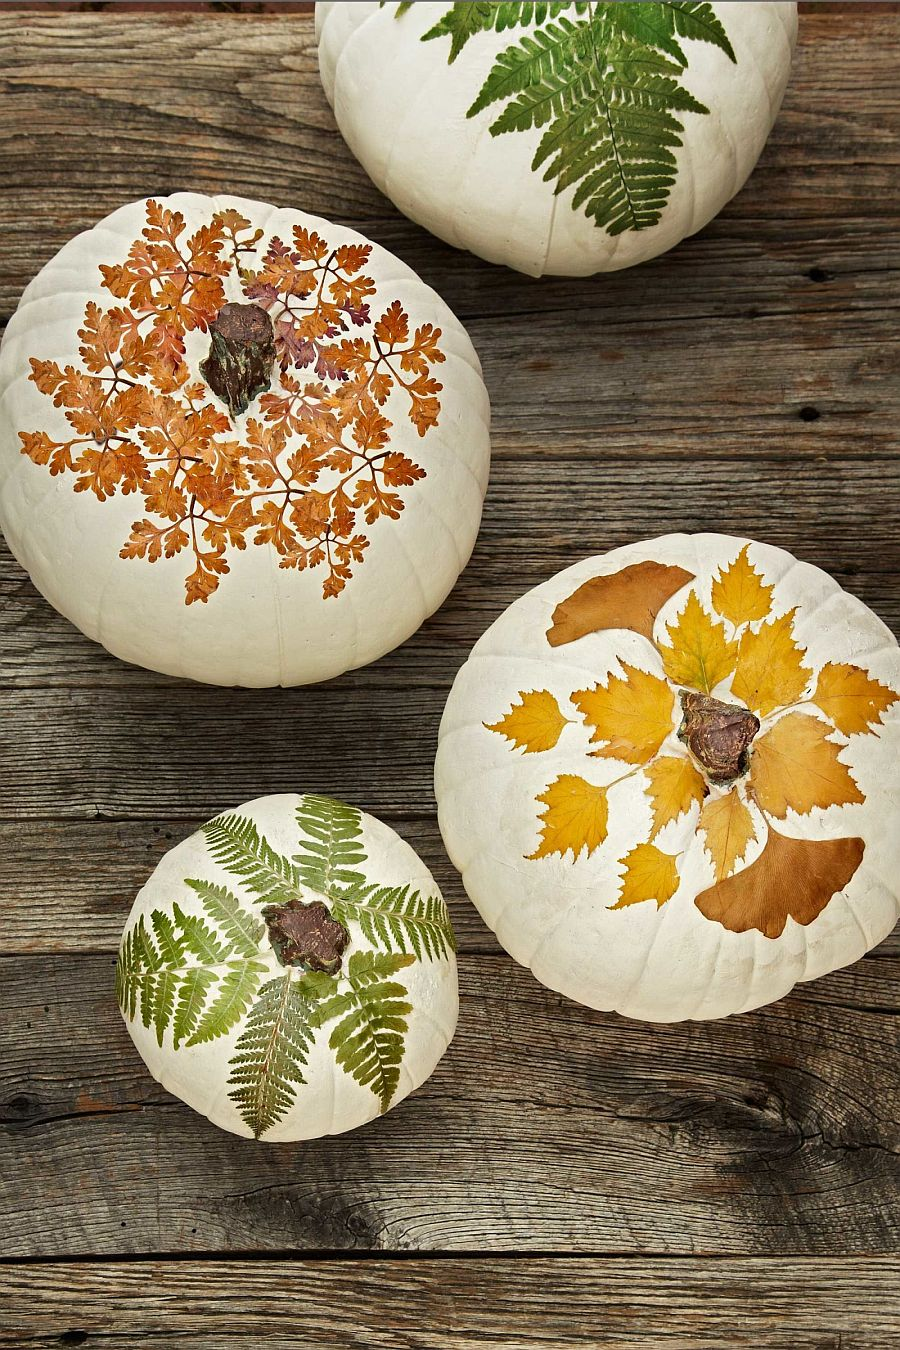 Nature-inspired painted pumpkin idea for a smart Halloween [From: Shop Terrain]